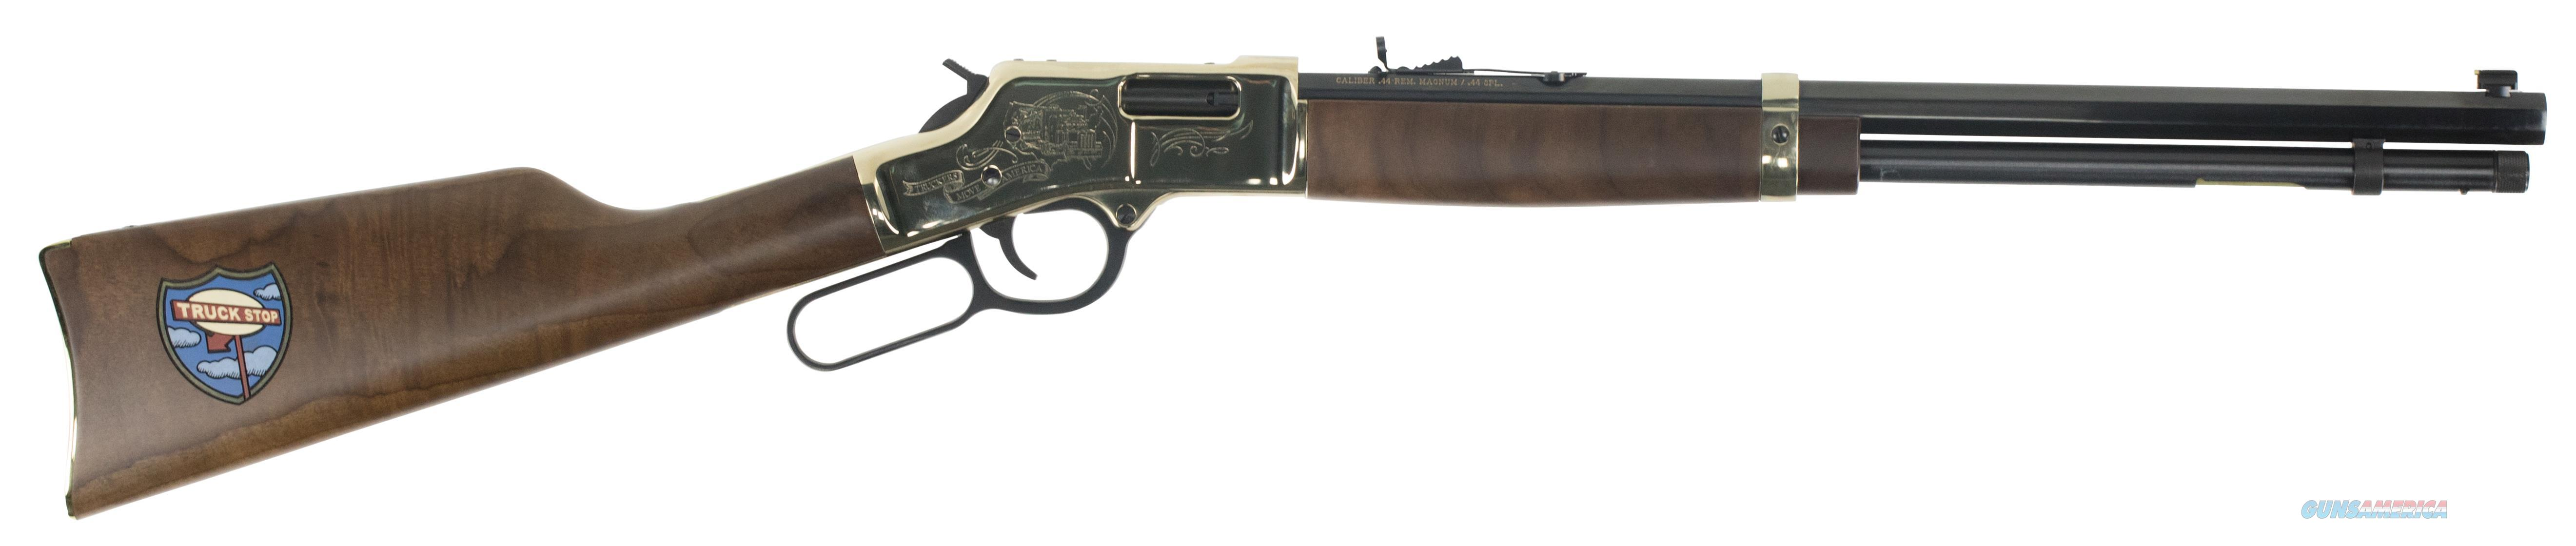 HENRY BIG BOY TRUCKER 44MAG H006TT  Guns > Rifles > Henry Rifles - Replica